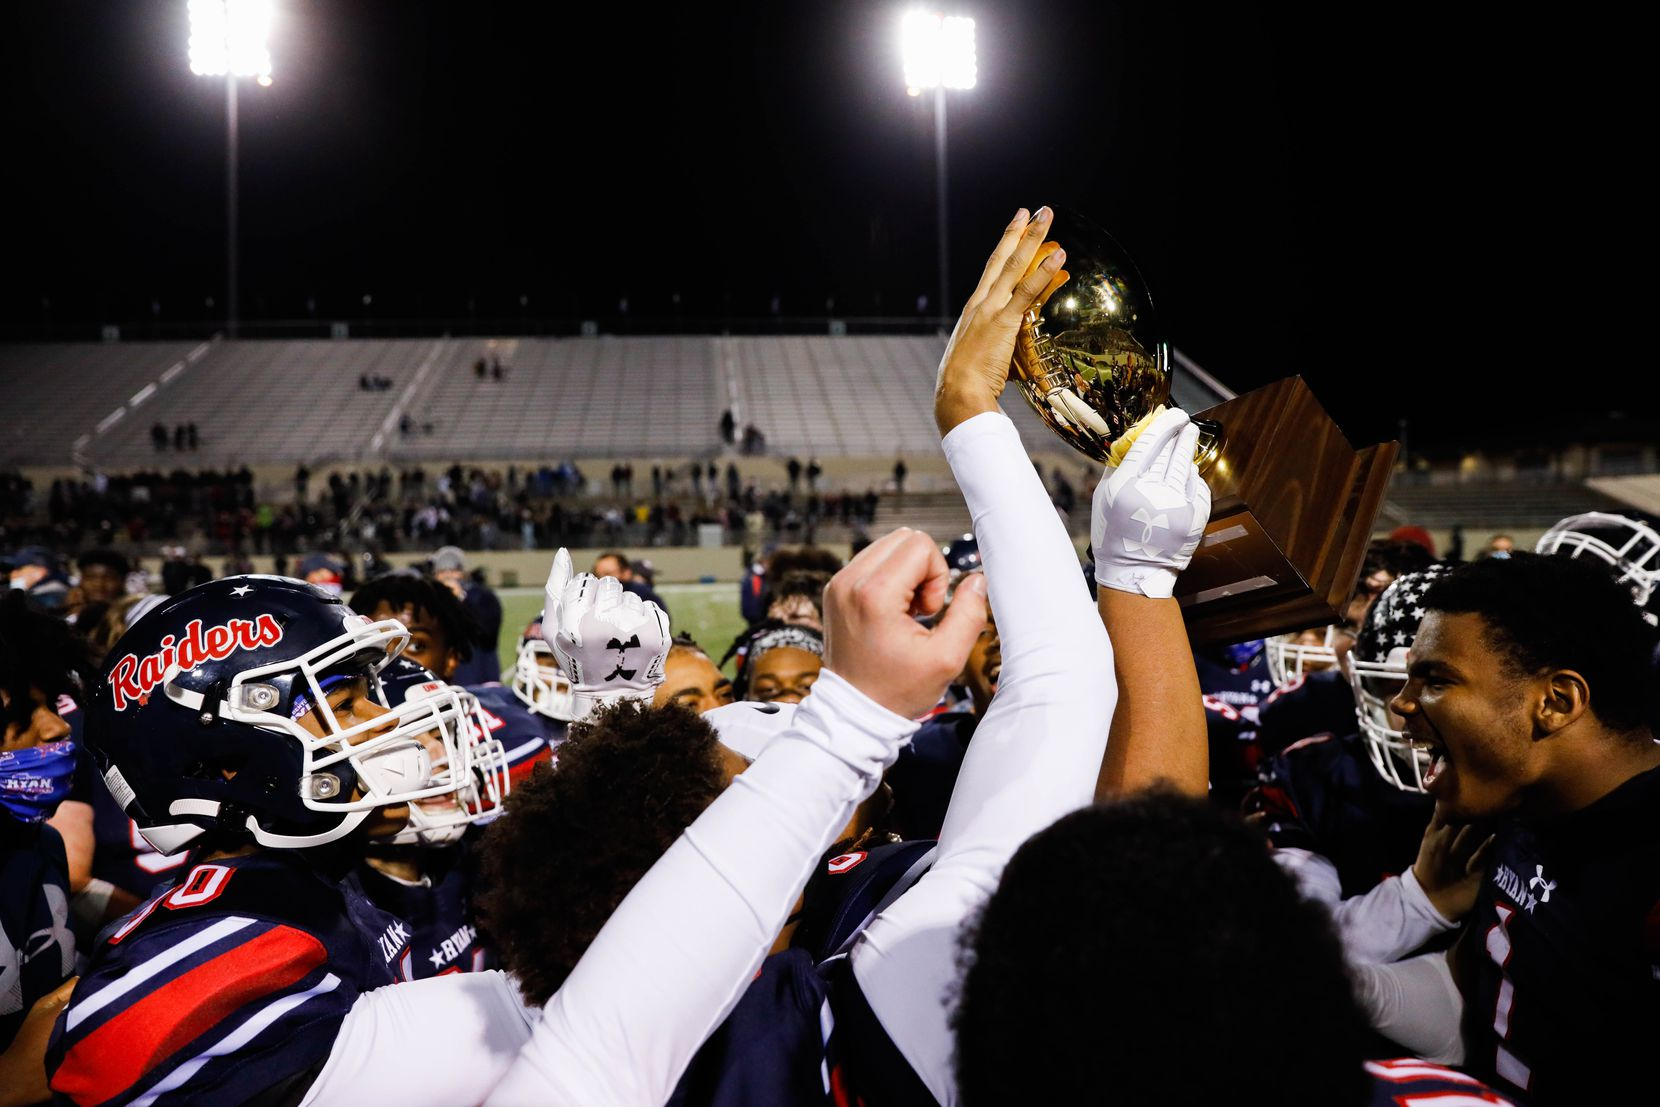 Denton Ryan football players celebrate winning the District 5-5A Division I title against Frisco Lone Star at the C.H. Collins Complex in Denton on Thursday, Dec. 4, 2020. Denton Ryan won, 35-21. (Juan Figueroa/ The Dallas Morning News)